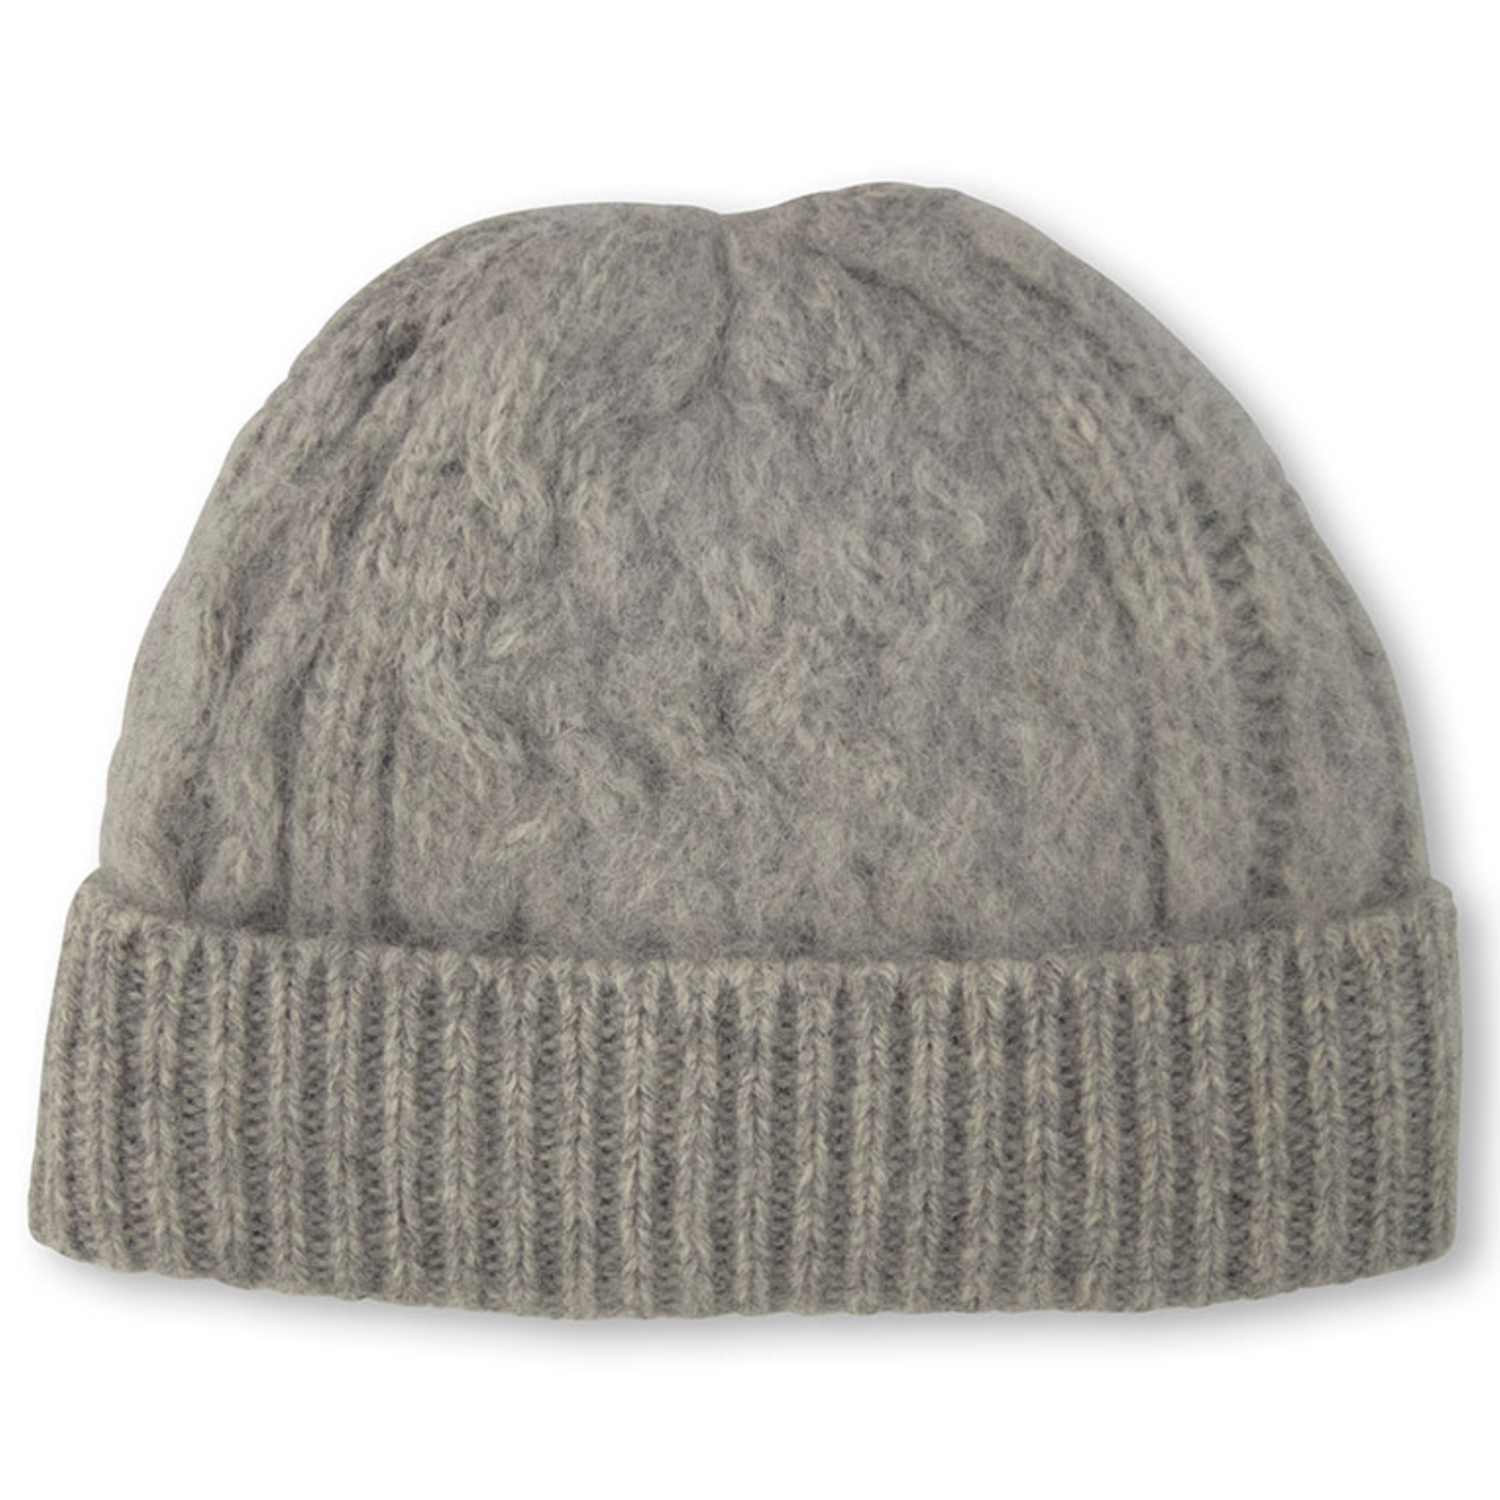 Börjesson Knit Beanie Grey